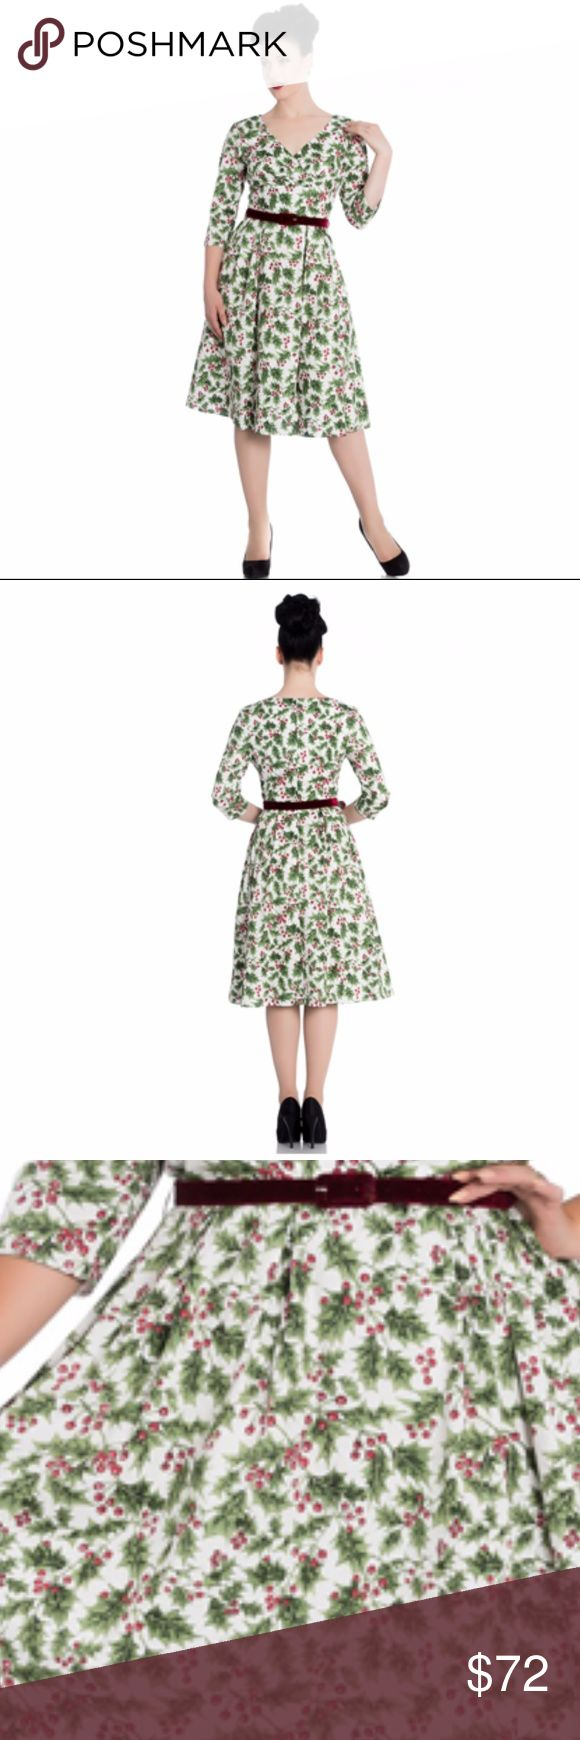 Holly Berry Holiday Pinup Rockabilly Skirt Retro 1950's dress by Hell Bunny with print of holly on a white background. Zip at the centre back to fasten. V neck front and high back. Comes with a detachable, dark red velvet belt. 98% Cotton, 2% Elastane Hell Bunny Dresses Midi